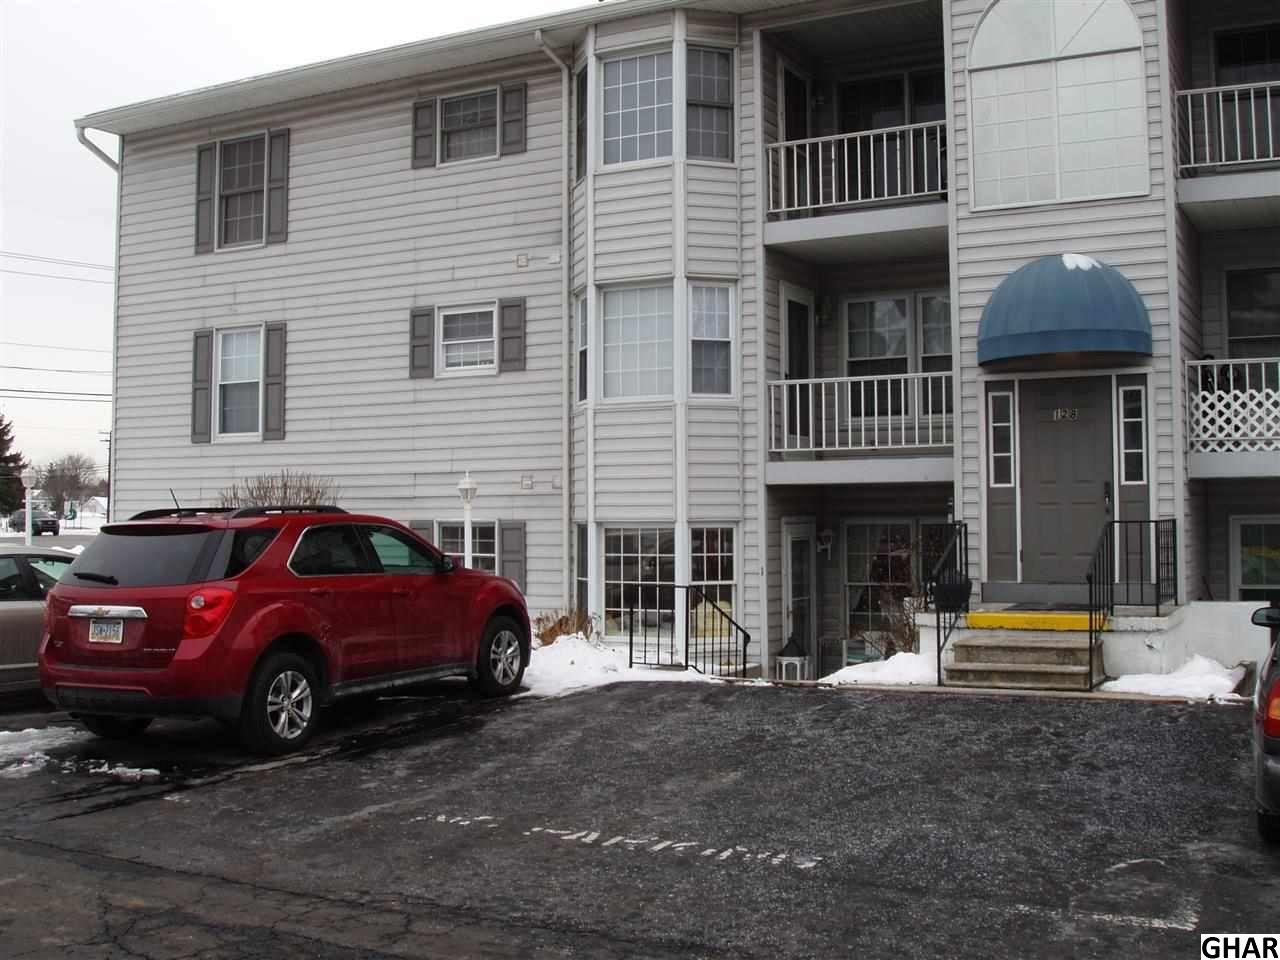 Rental Homes for Rent, ListingId:34651344, location: 128 W Portland Mechanicsburg 17055